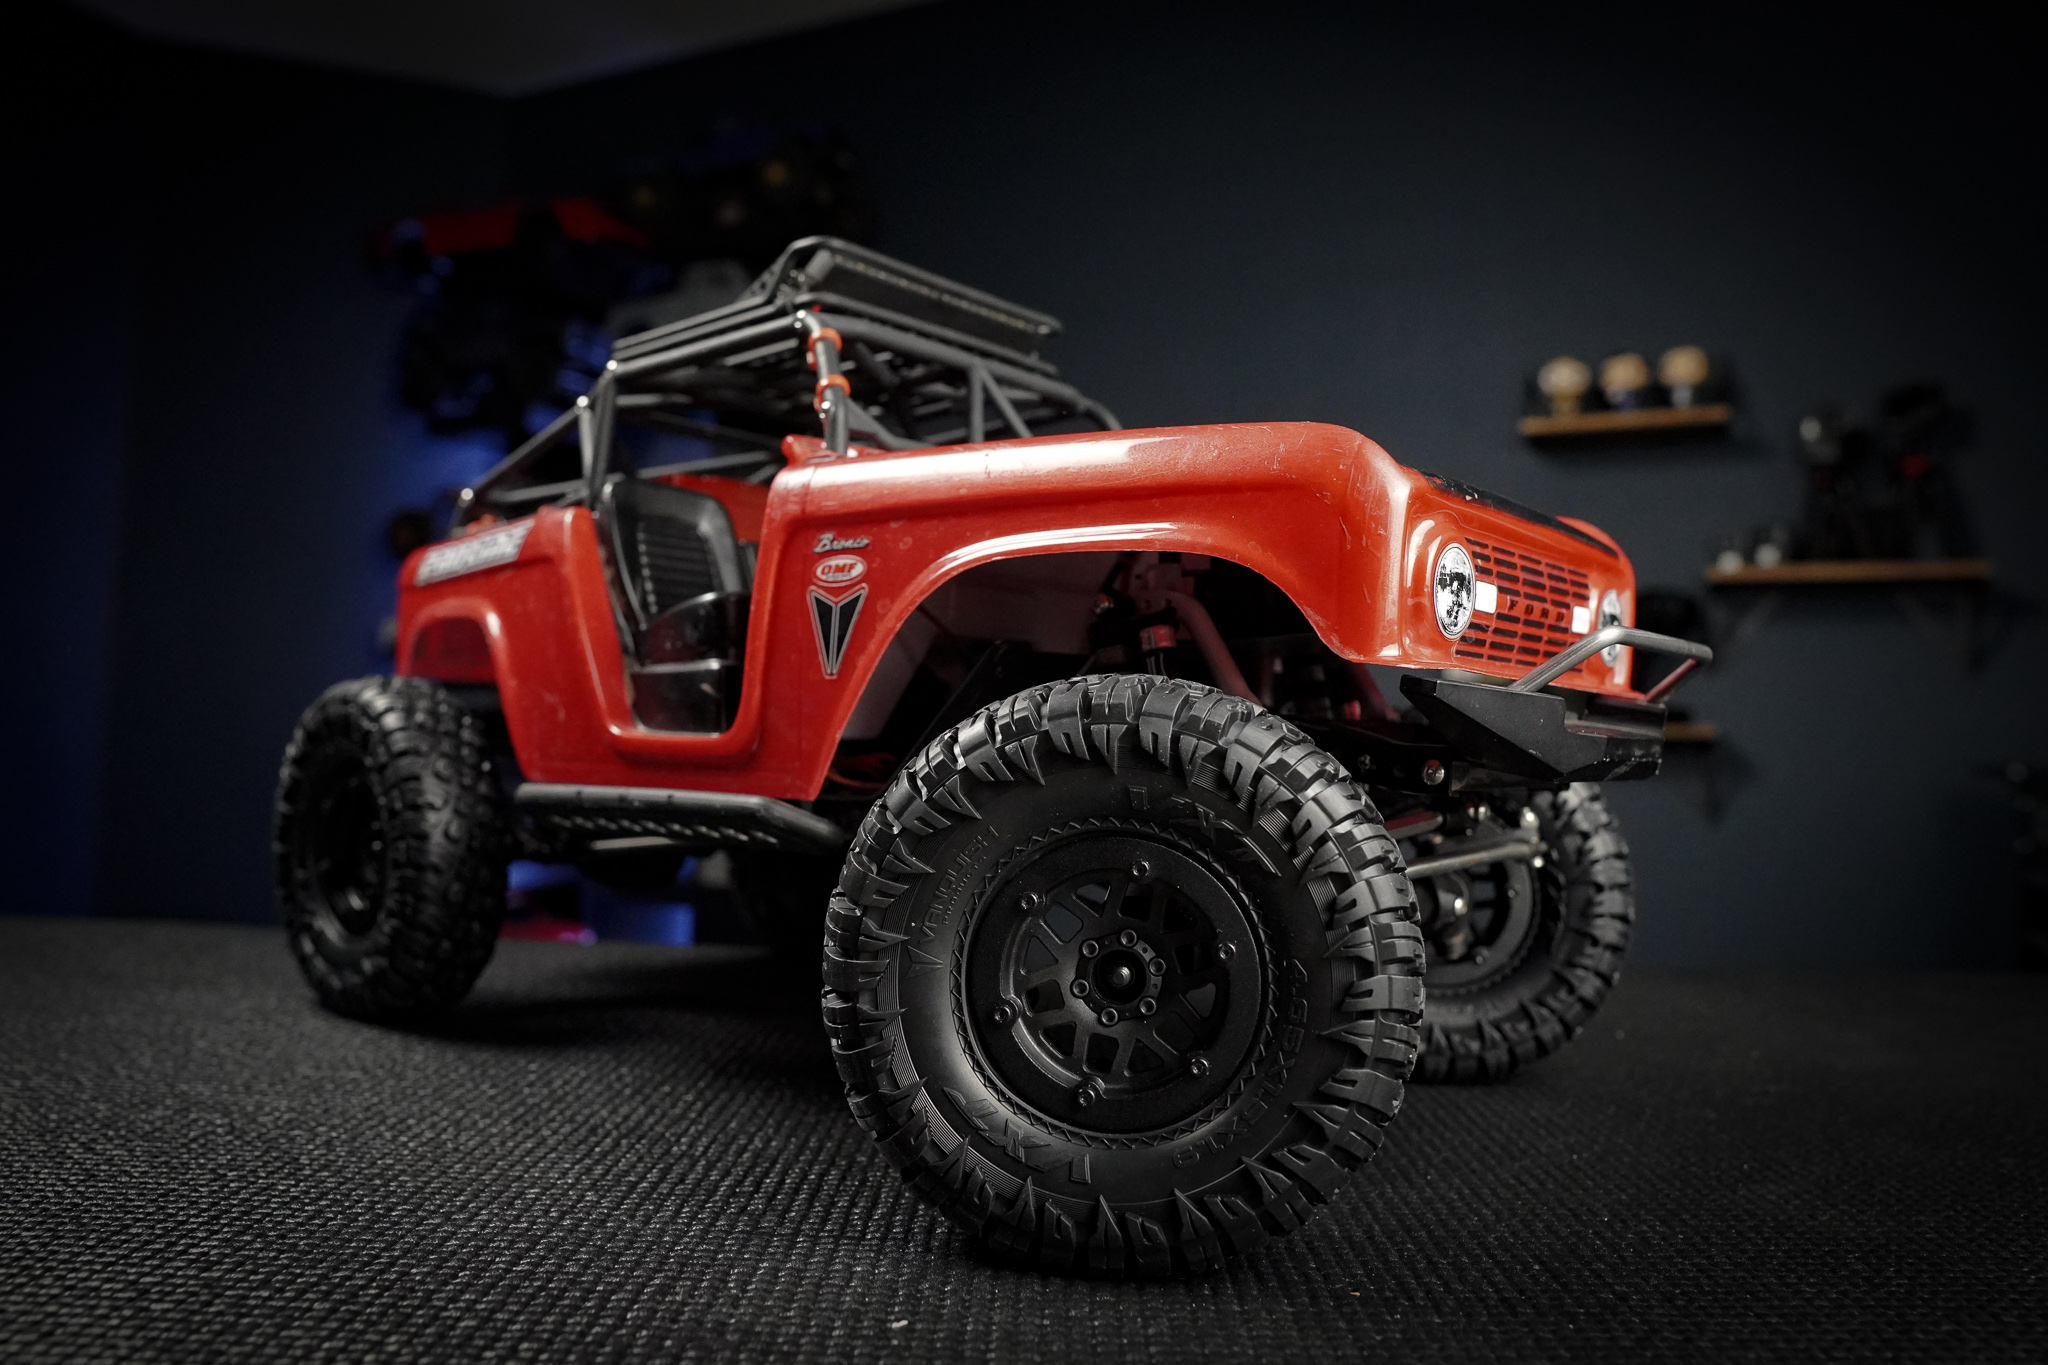 For Sale or Trade - S1T1 - SCX10 BroncoPrice: Undetermined (Estimated @ $350+ after future modifications are completed)